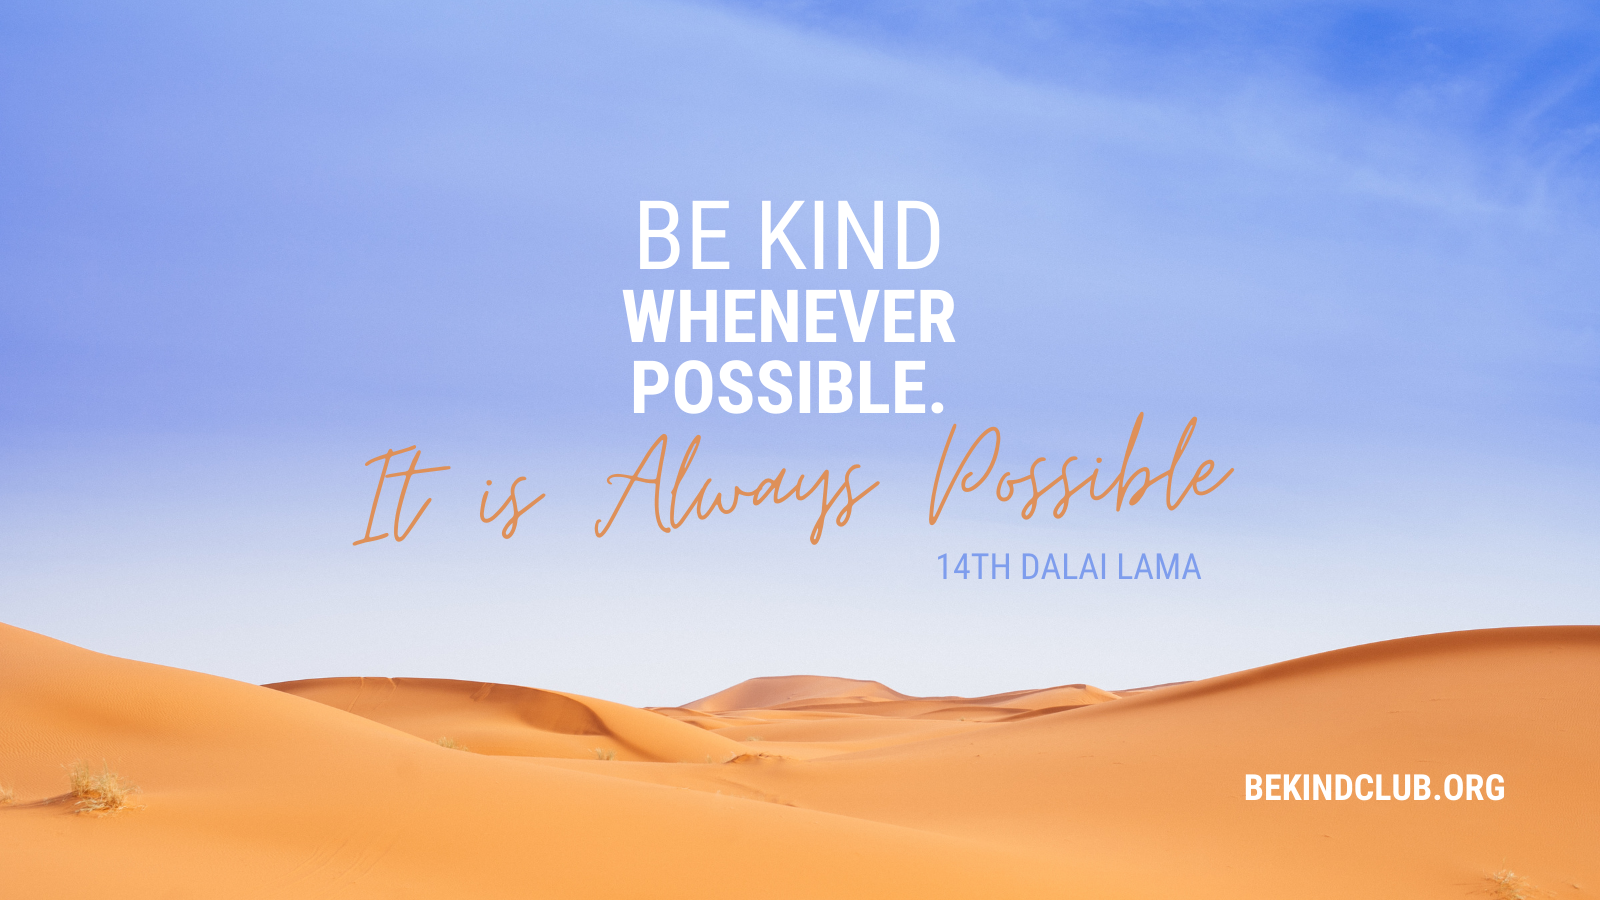 dalai lama quote about kindness